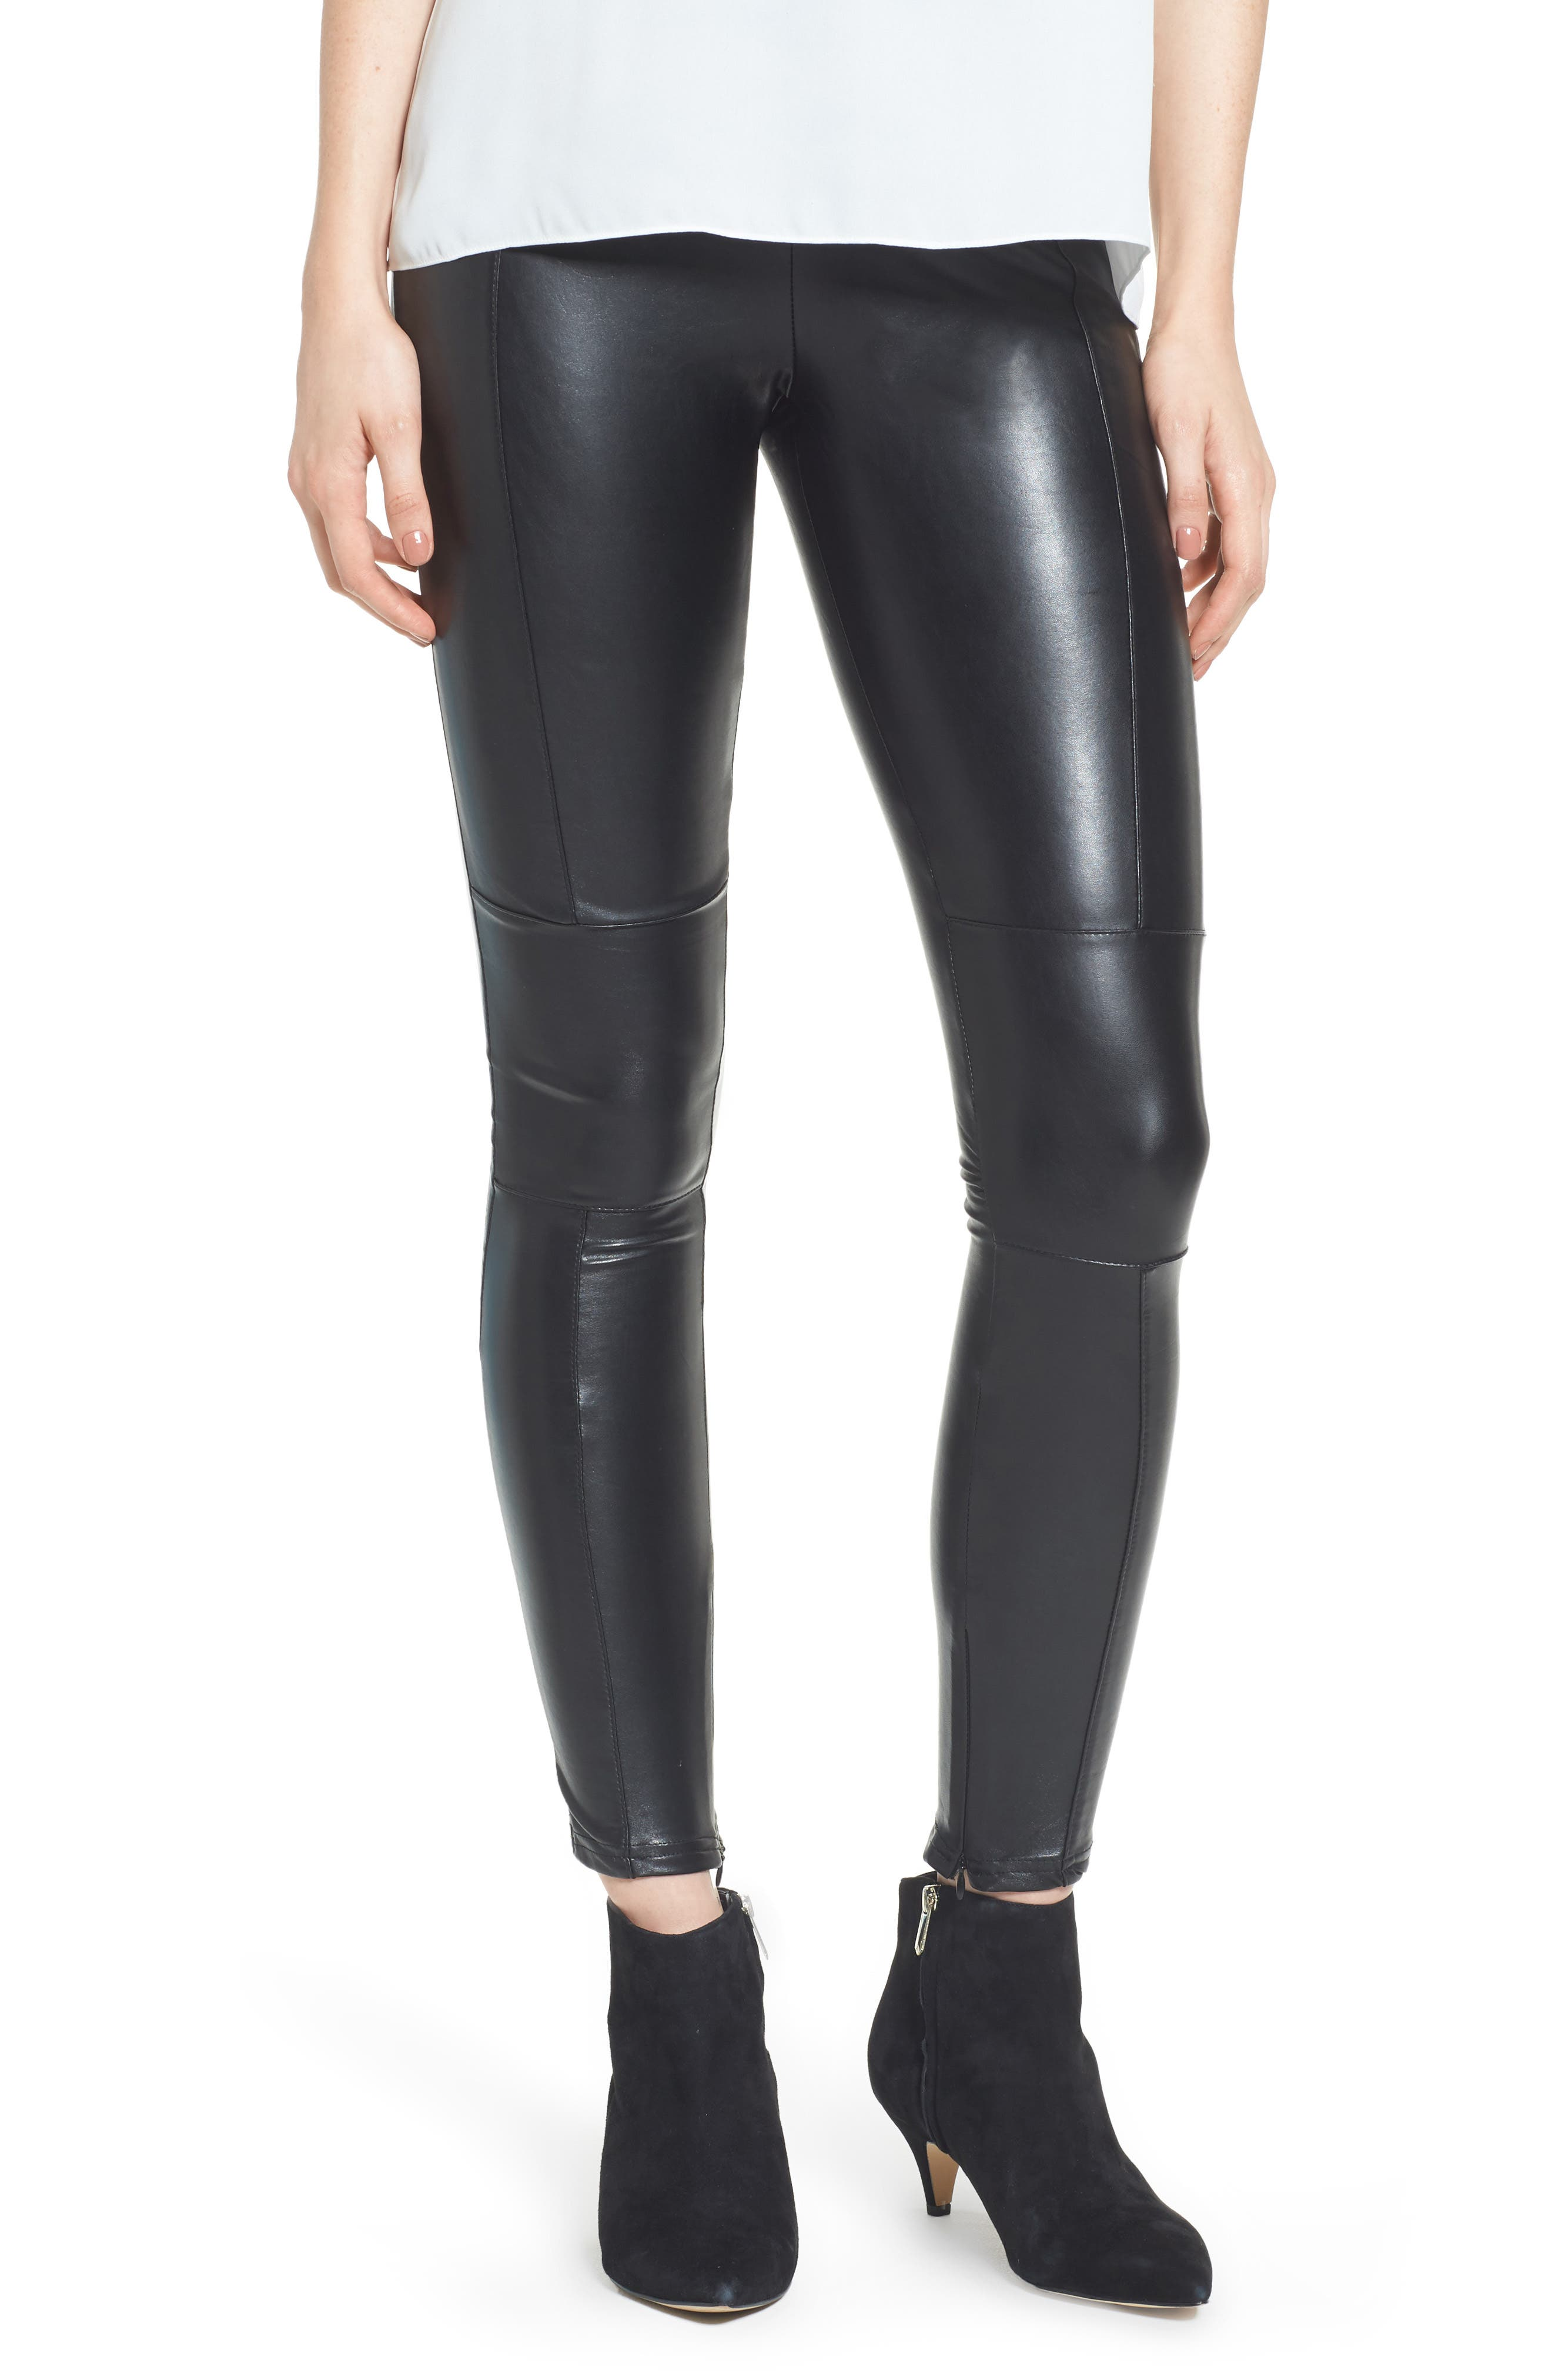 Bishop + Young Faux Leather Ankle Leggings,                             Main thumbnail 1, color,                             001